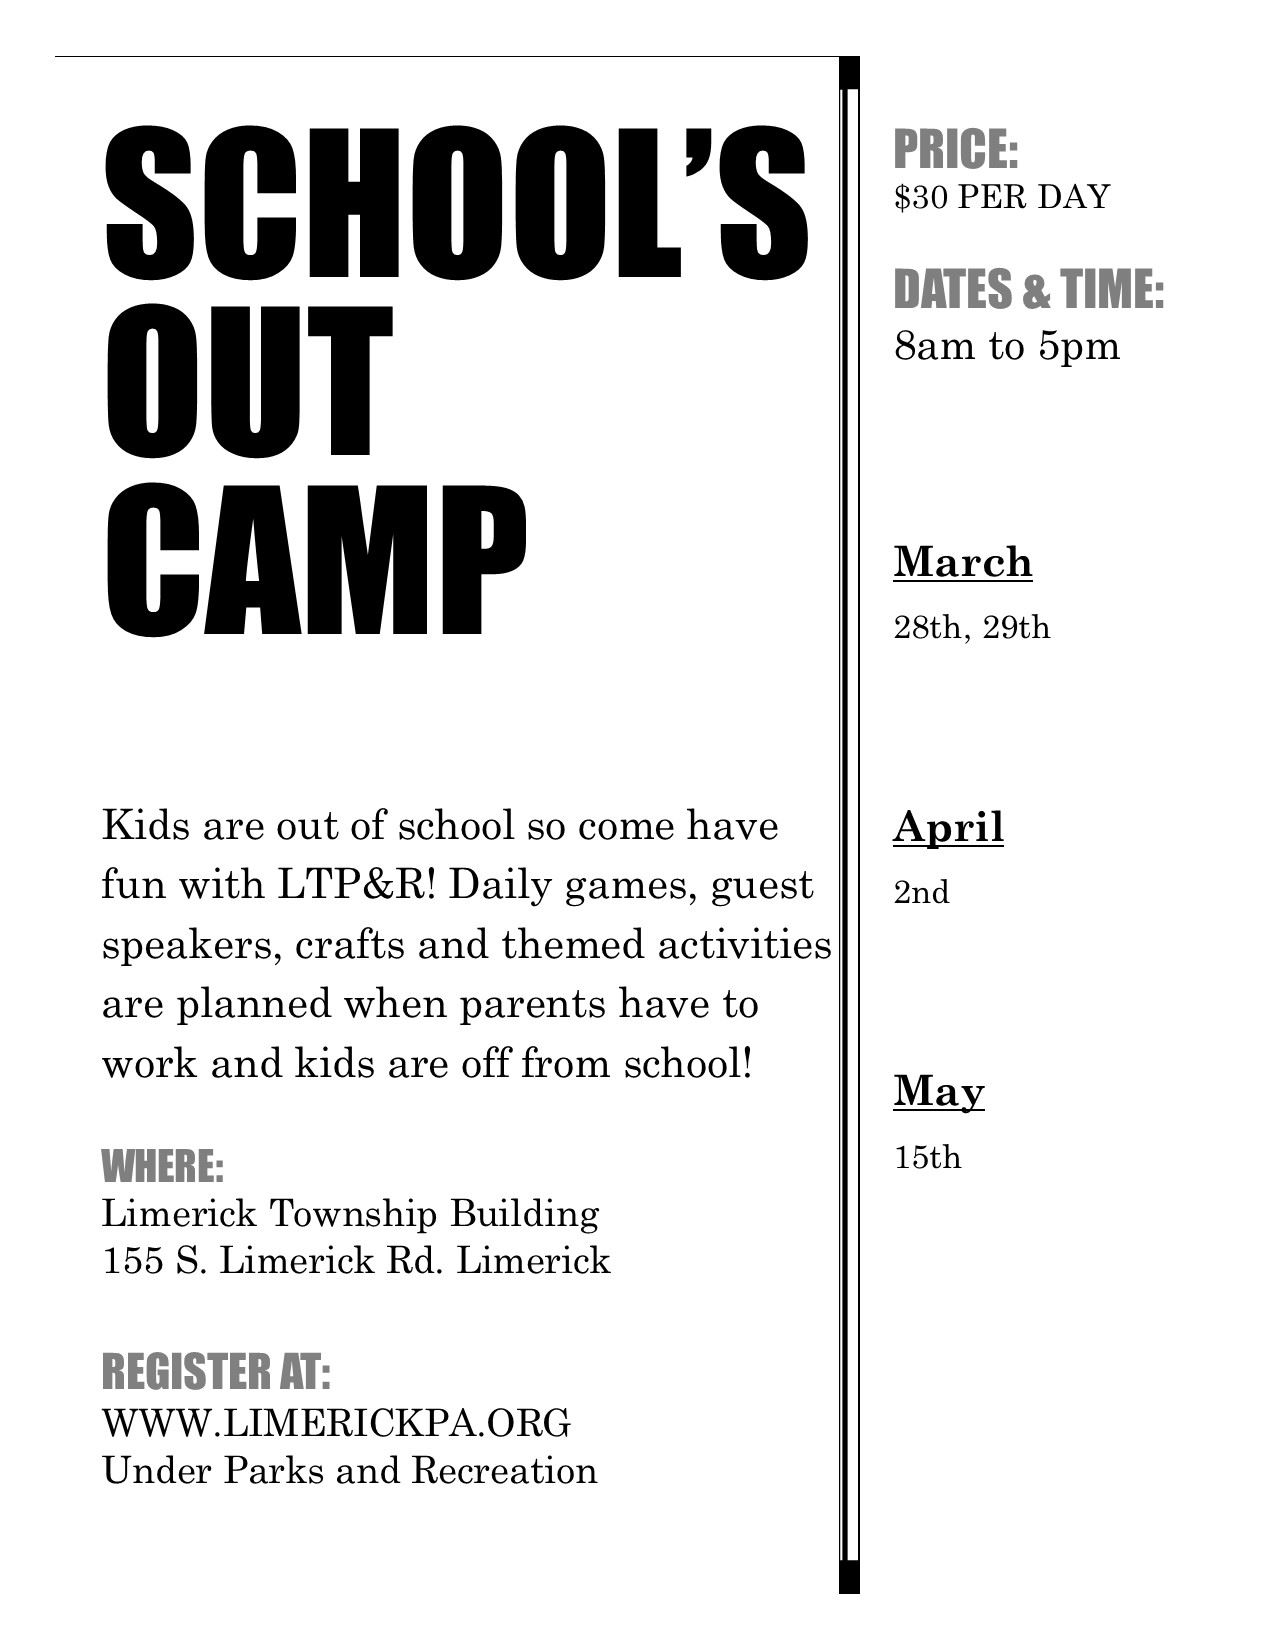 Schools Out Camp UPDATED